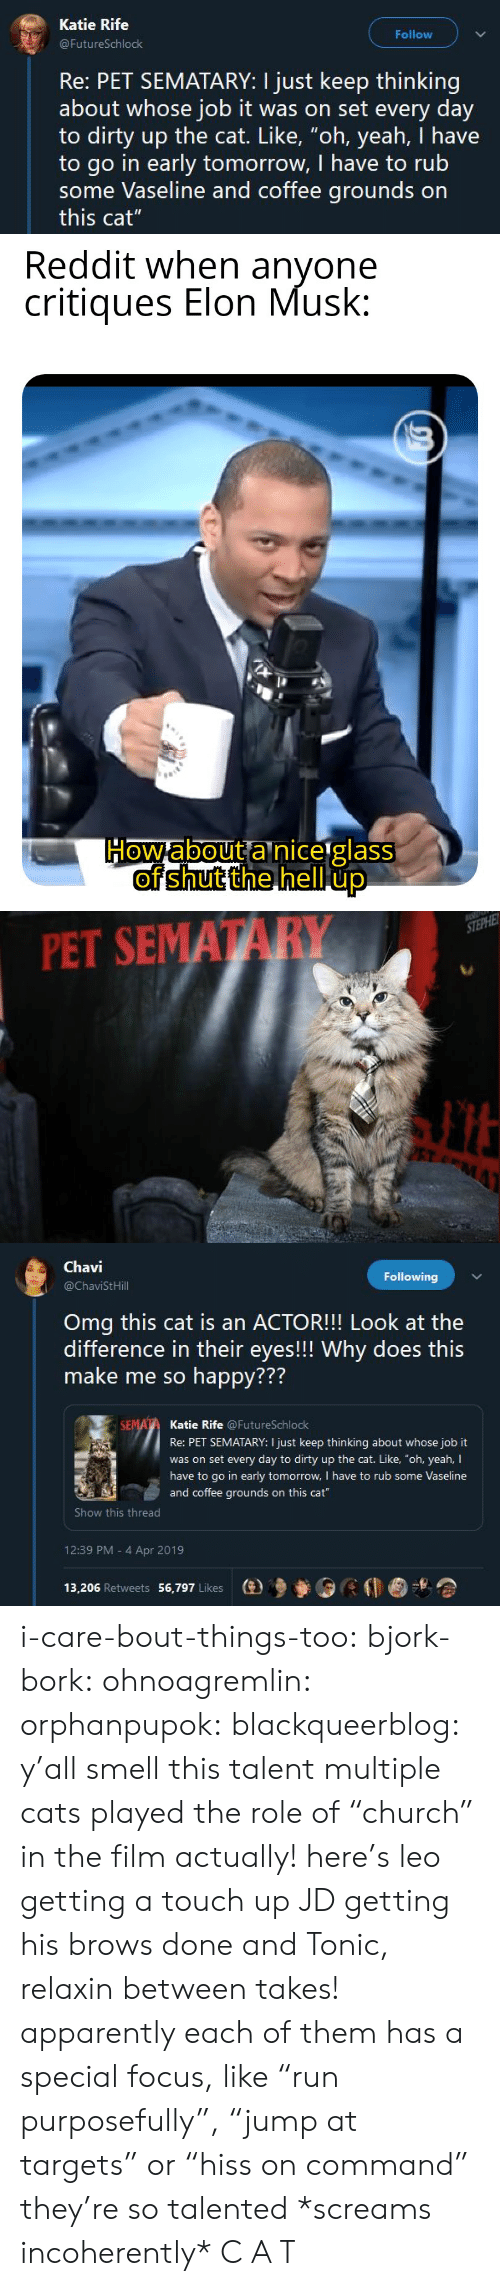 "Múltiple: Katie Rife  Follow  FutureSchlock  Re: PET SEMATARY: I just keep thinking  about whose job it was on set every day  to dirty up the cat. Like, ""oh, yeah, I have  to go in early tomorrow, I have to rub  some Vaseline and coffee grounds on  this cat""   PET SEMATARY   Chavi  @ChaviStHill  Following  Omg this cat is an ACTOR!!! Look at the  difference in their eyes!!! Why does this  make me so happy???  772  Katie Rife @FutureSchlock  Re: PET SEMATARY: I just keep thinking about whose job it  was on set every day to dirty up the cat. Like, ""oh, yeah, I  have to go in early tomorrow, I have to rub some Vaseline  and coffee grounds on this cat  Show this thread  12:39 PM - 4 Apr 2019  13,206 Retweets 56,797 Likes  (e)乡參0 i-care-bout-things-too:  bjork-bork:  ohnoagremlin:  orphanpupok:  blackqueerblog: y'all smell this talent  multiple cats played the role of ""church"" in the film actually! here's leo getting a touch up JD getting his brows done and Tonic, relaxin between takes!   apparently each of them has a special focus, like ""run purposefully"", ""jump at targets"" or ""hiss on command"" they're so talented     *screams incoherently* C A T"